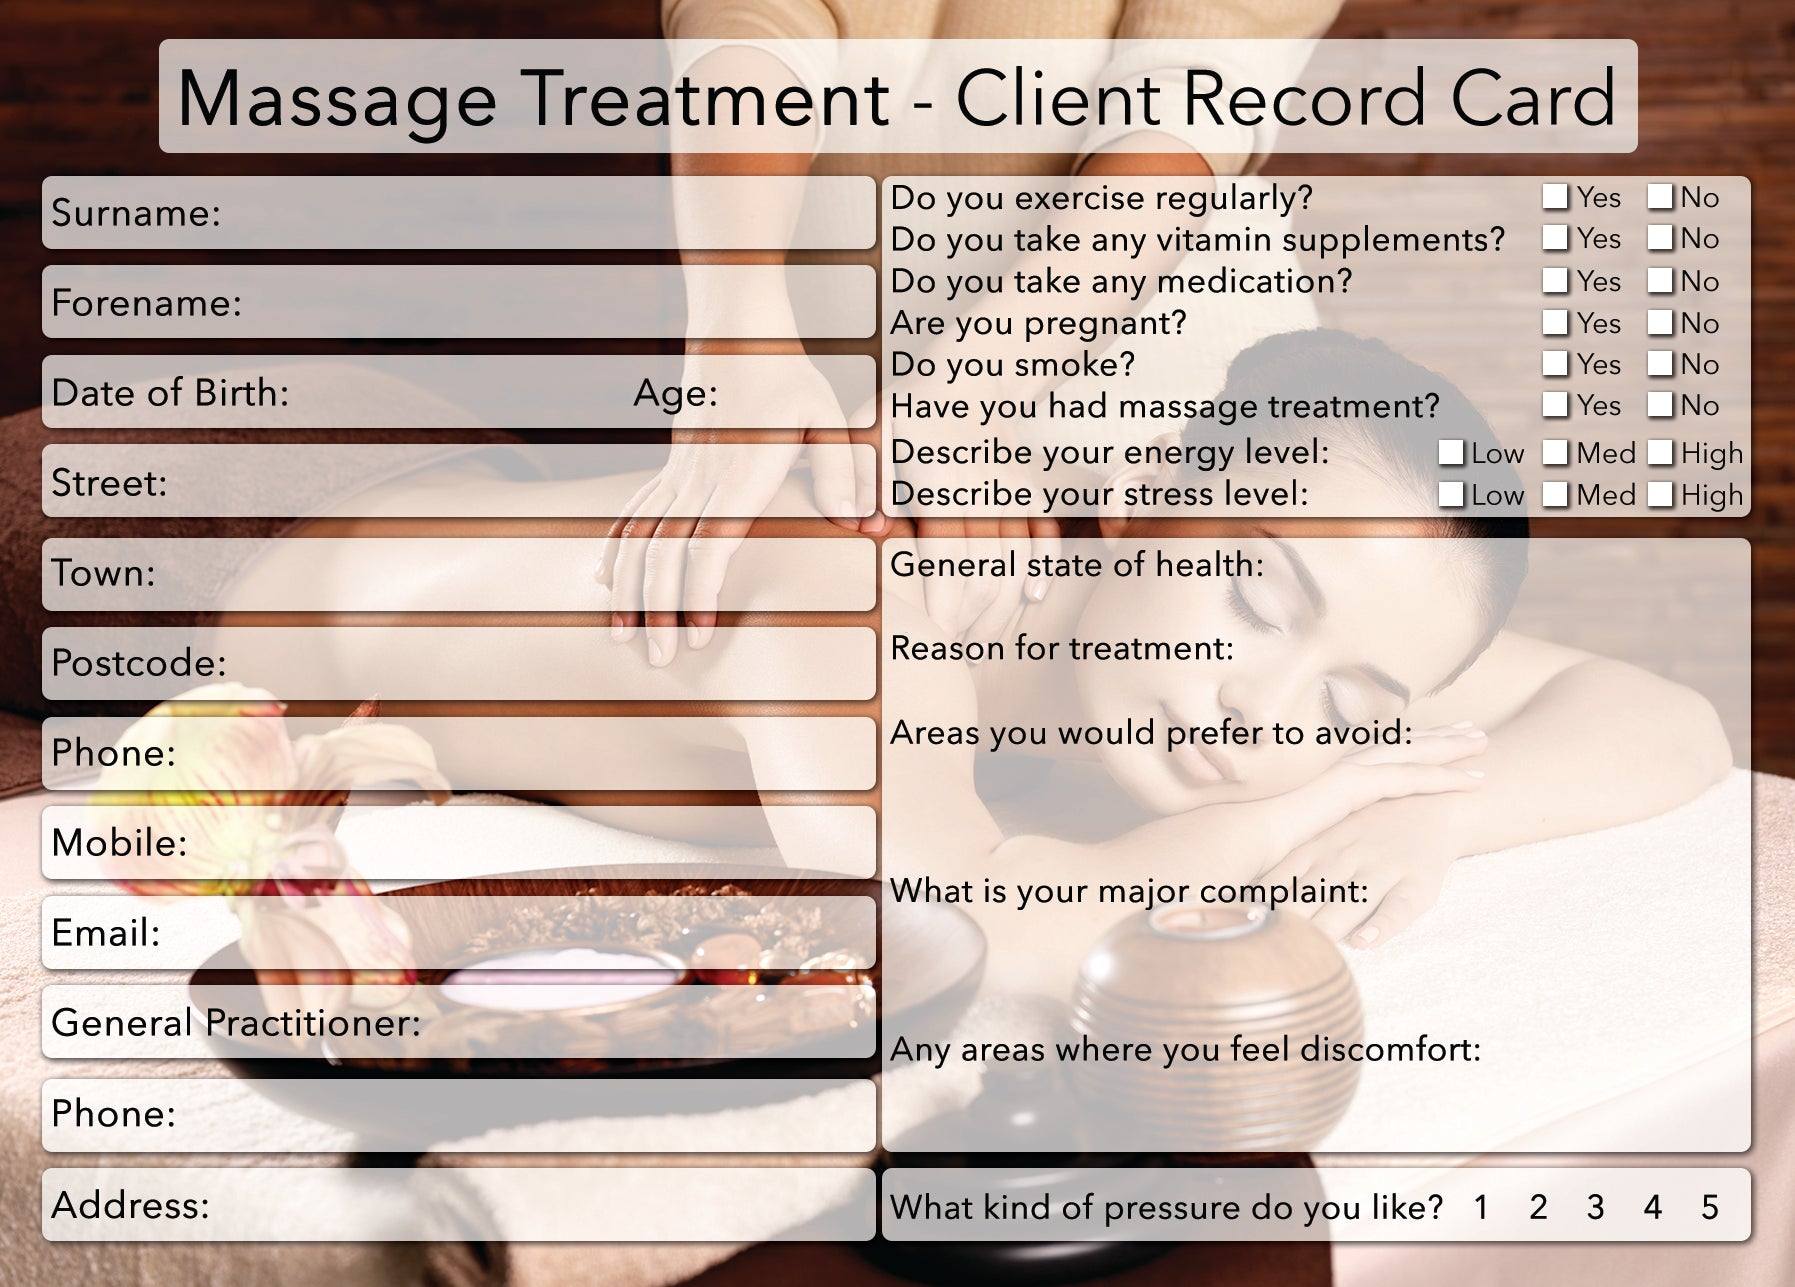 new massage client card treatment consultation card